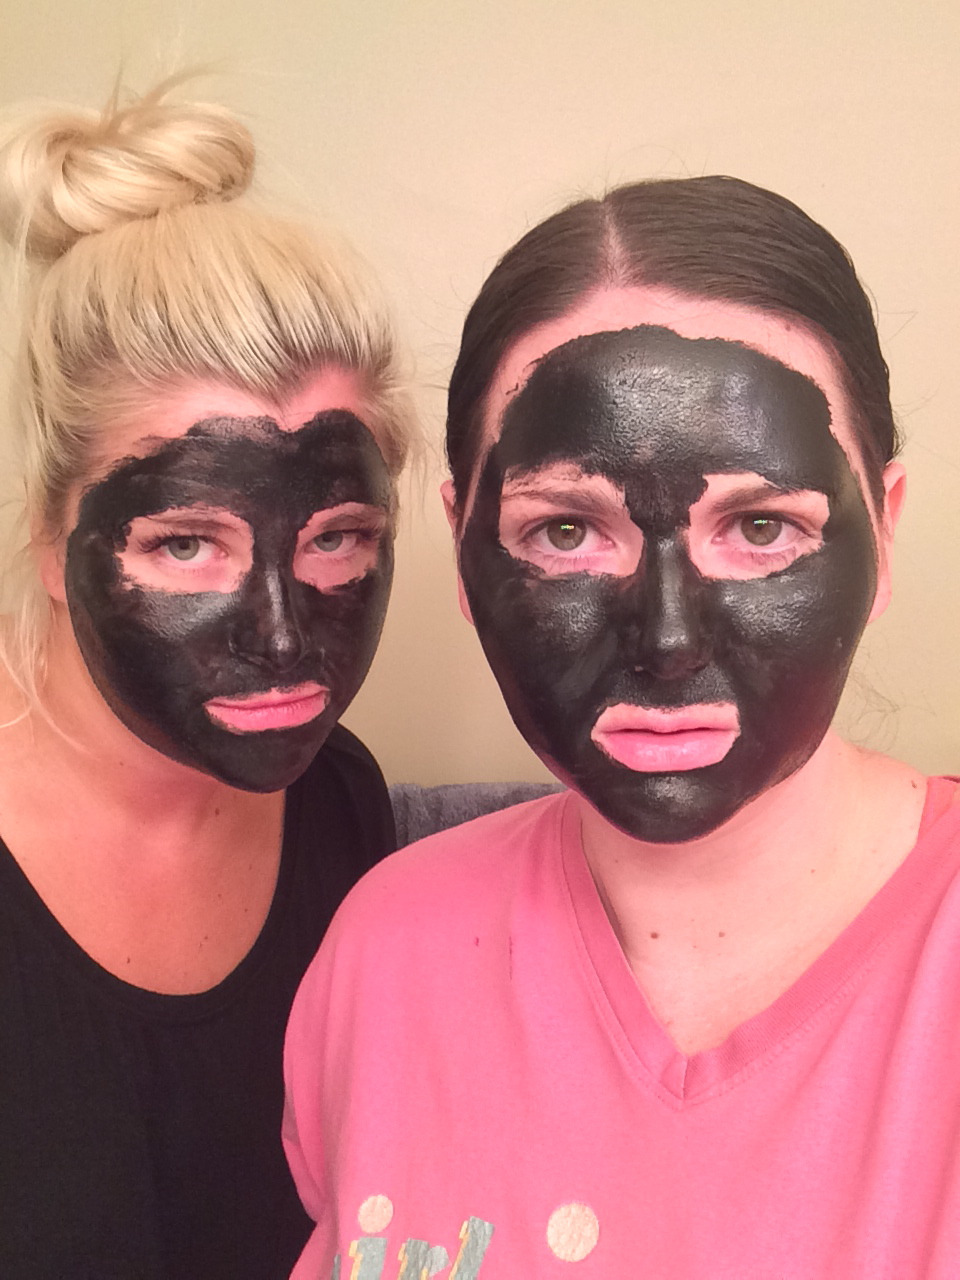 Boscia face mask July 21, 2014 901